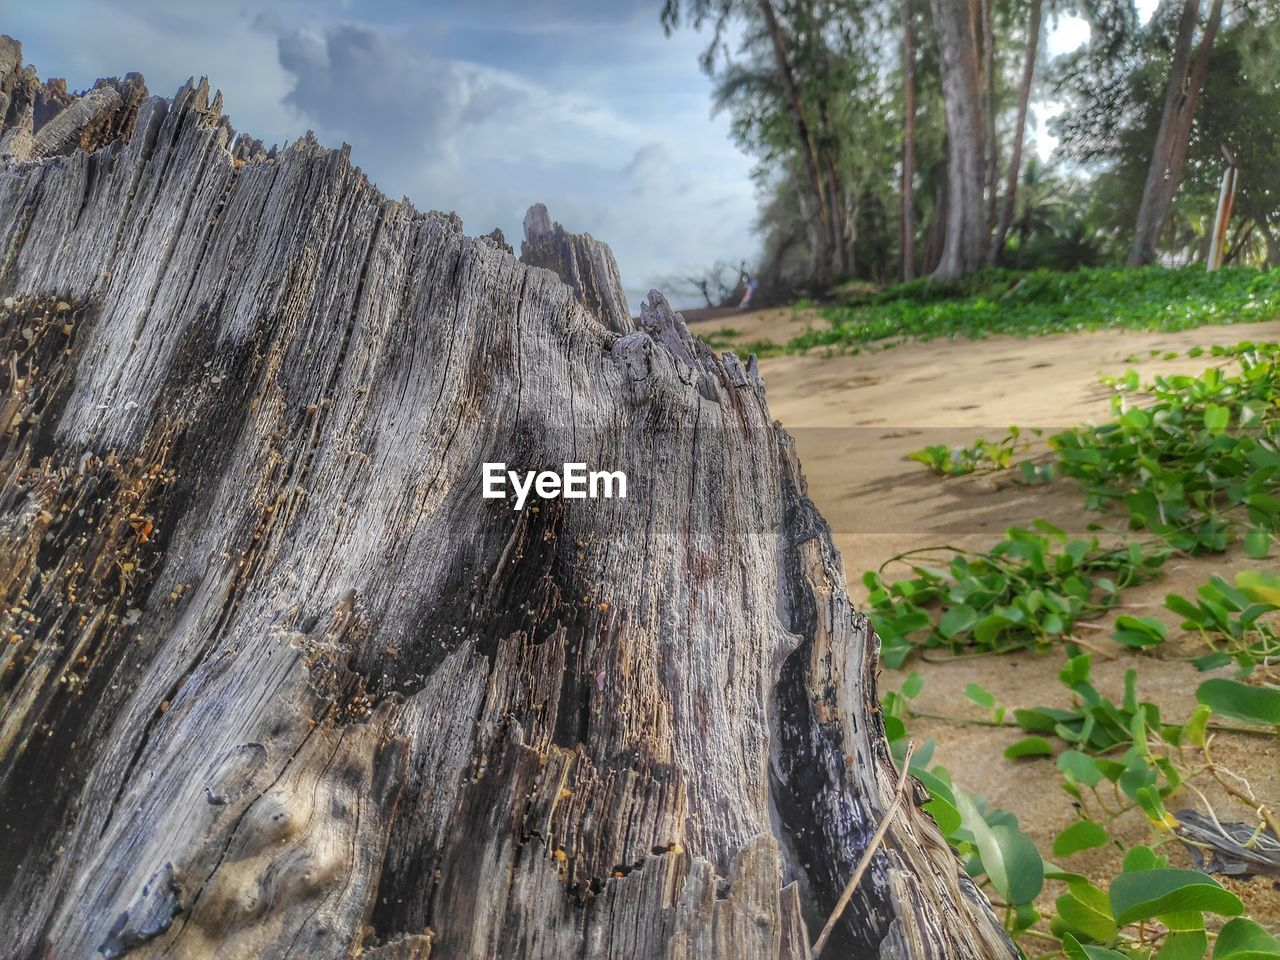 tree, plant, wood - material, nature, tree trunk, trunk, no people, day, textured, bark, growth, land, close-up, focus on foreground, outdoors, beauty in nature, tree stump, tranquility, sky, rough, wood